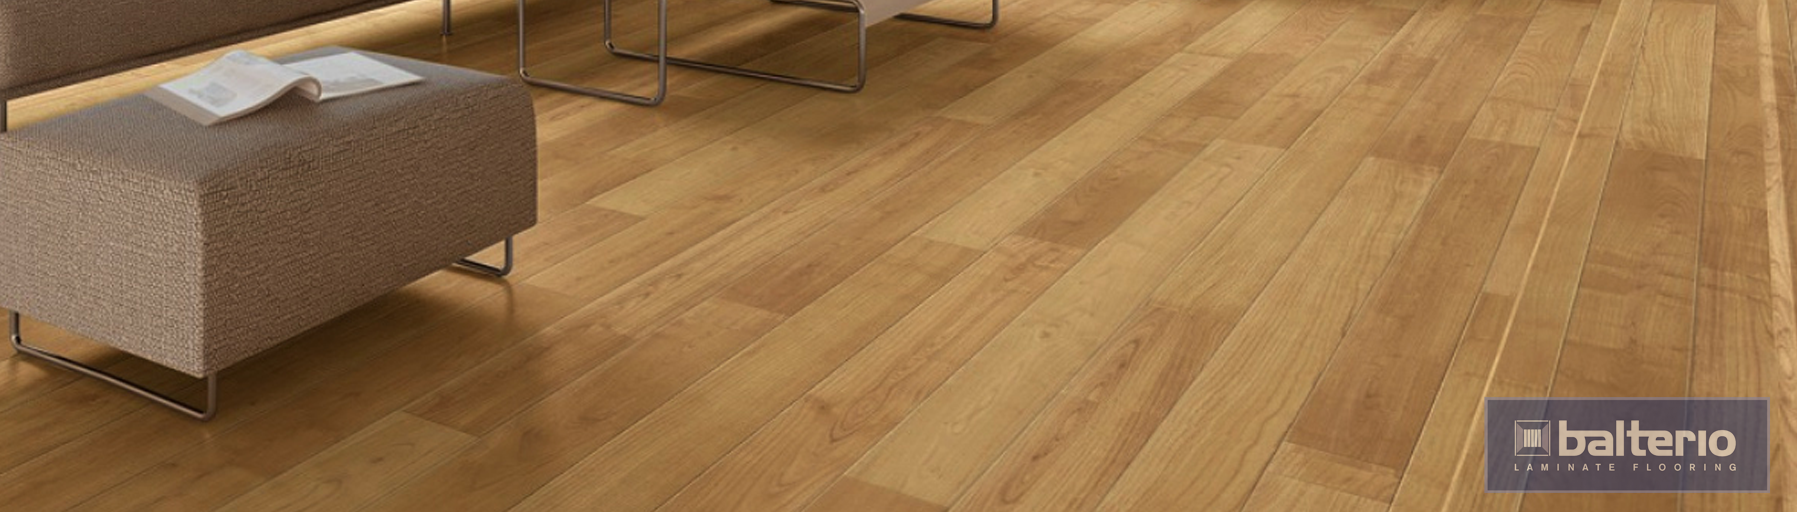 Laminate Flooring in Stoke, Stoke-on-Trent